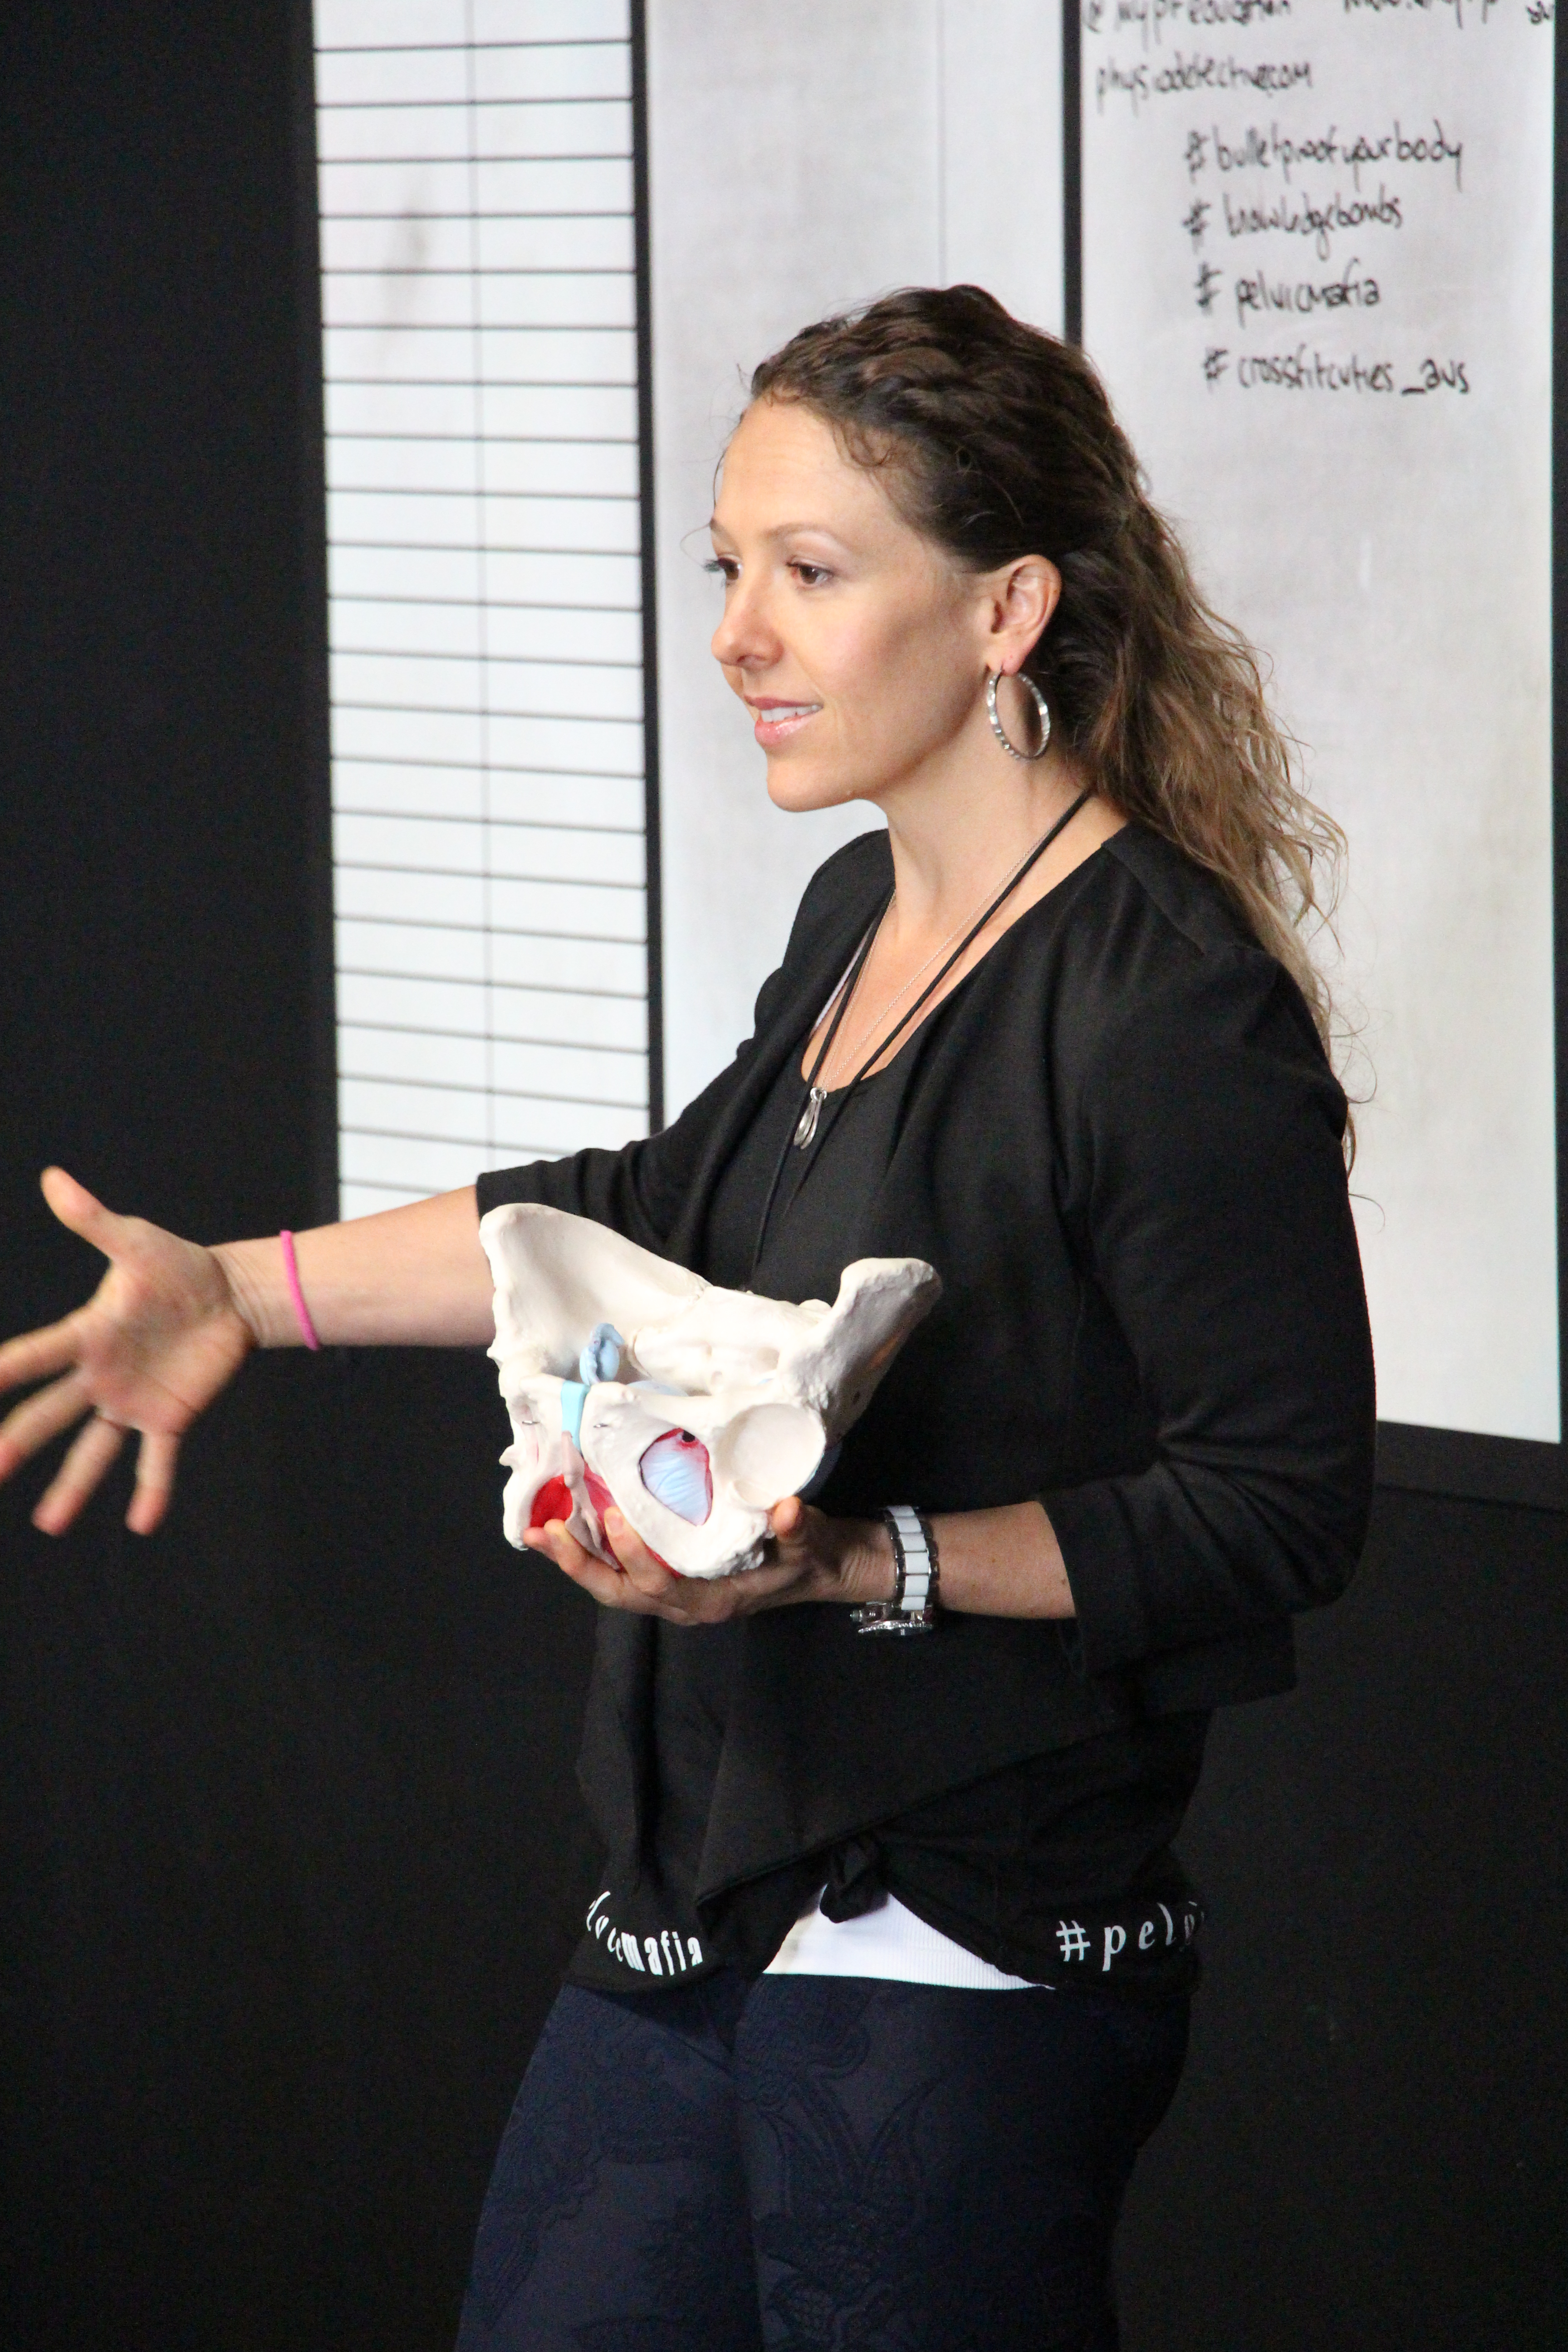 Ep 2 of The Physio Detective Podcast – Lori Forner ...